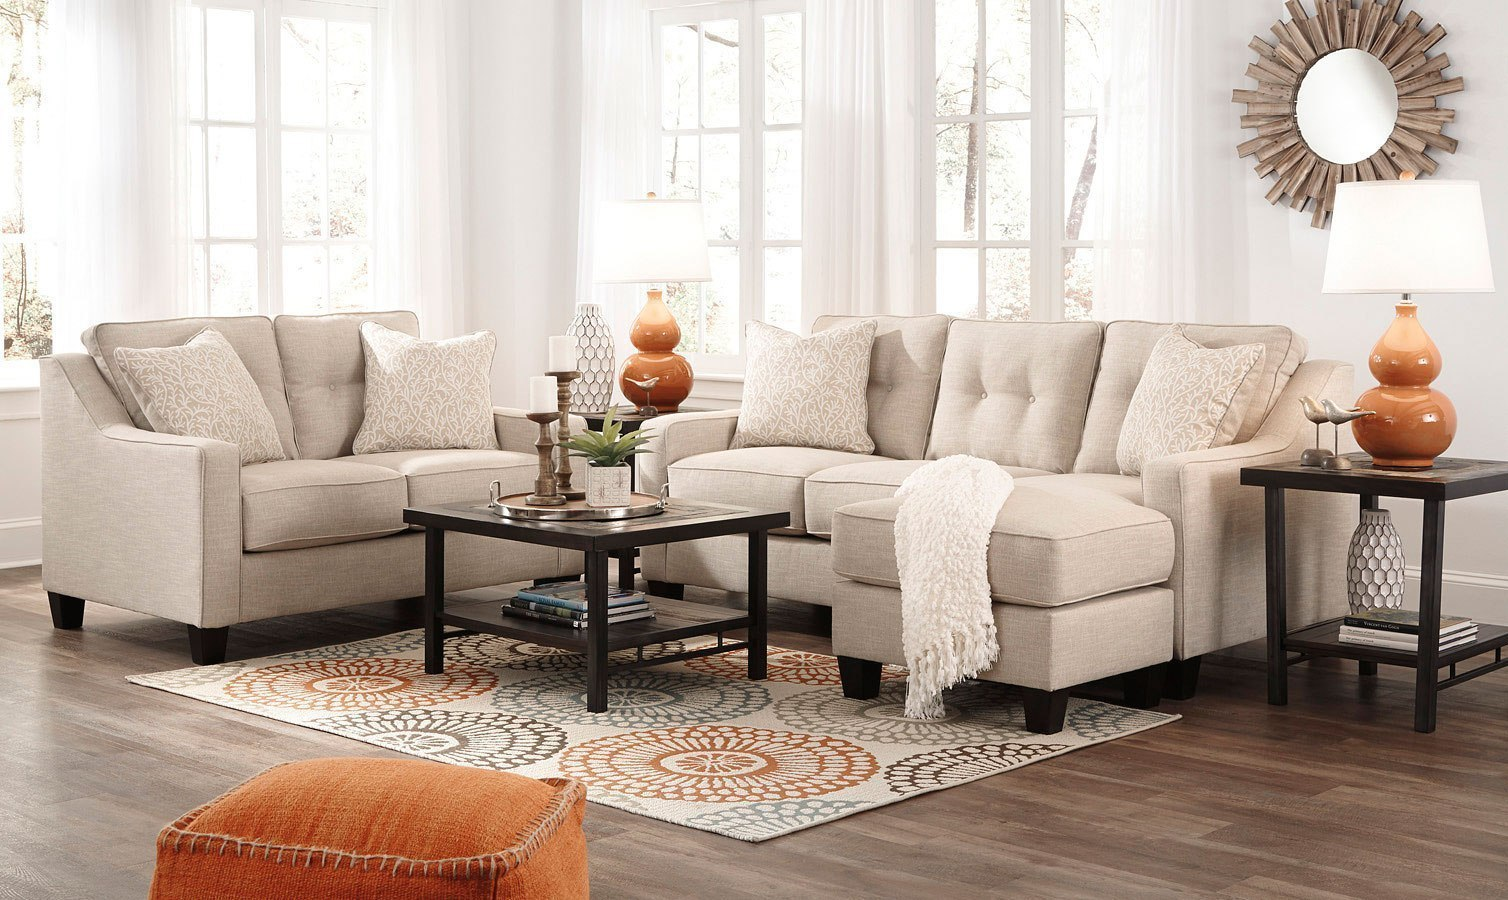 Aldie Nuvella Sand Living Room Set By Benchcraft 1 Review